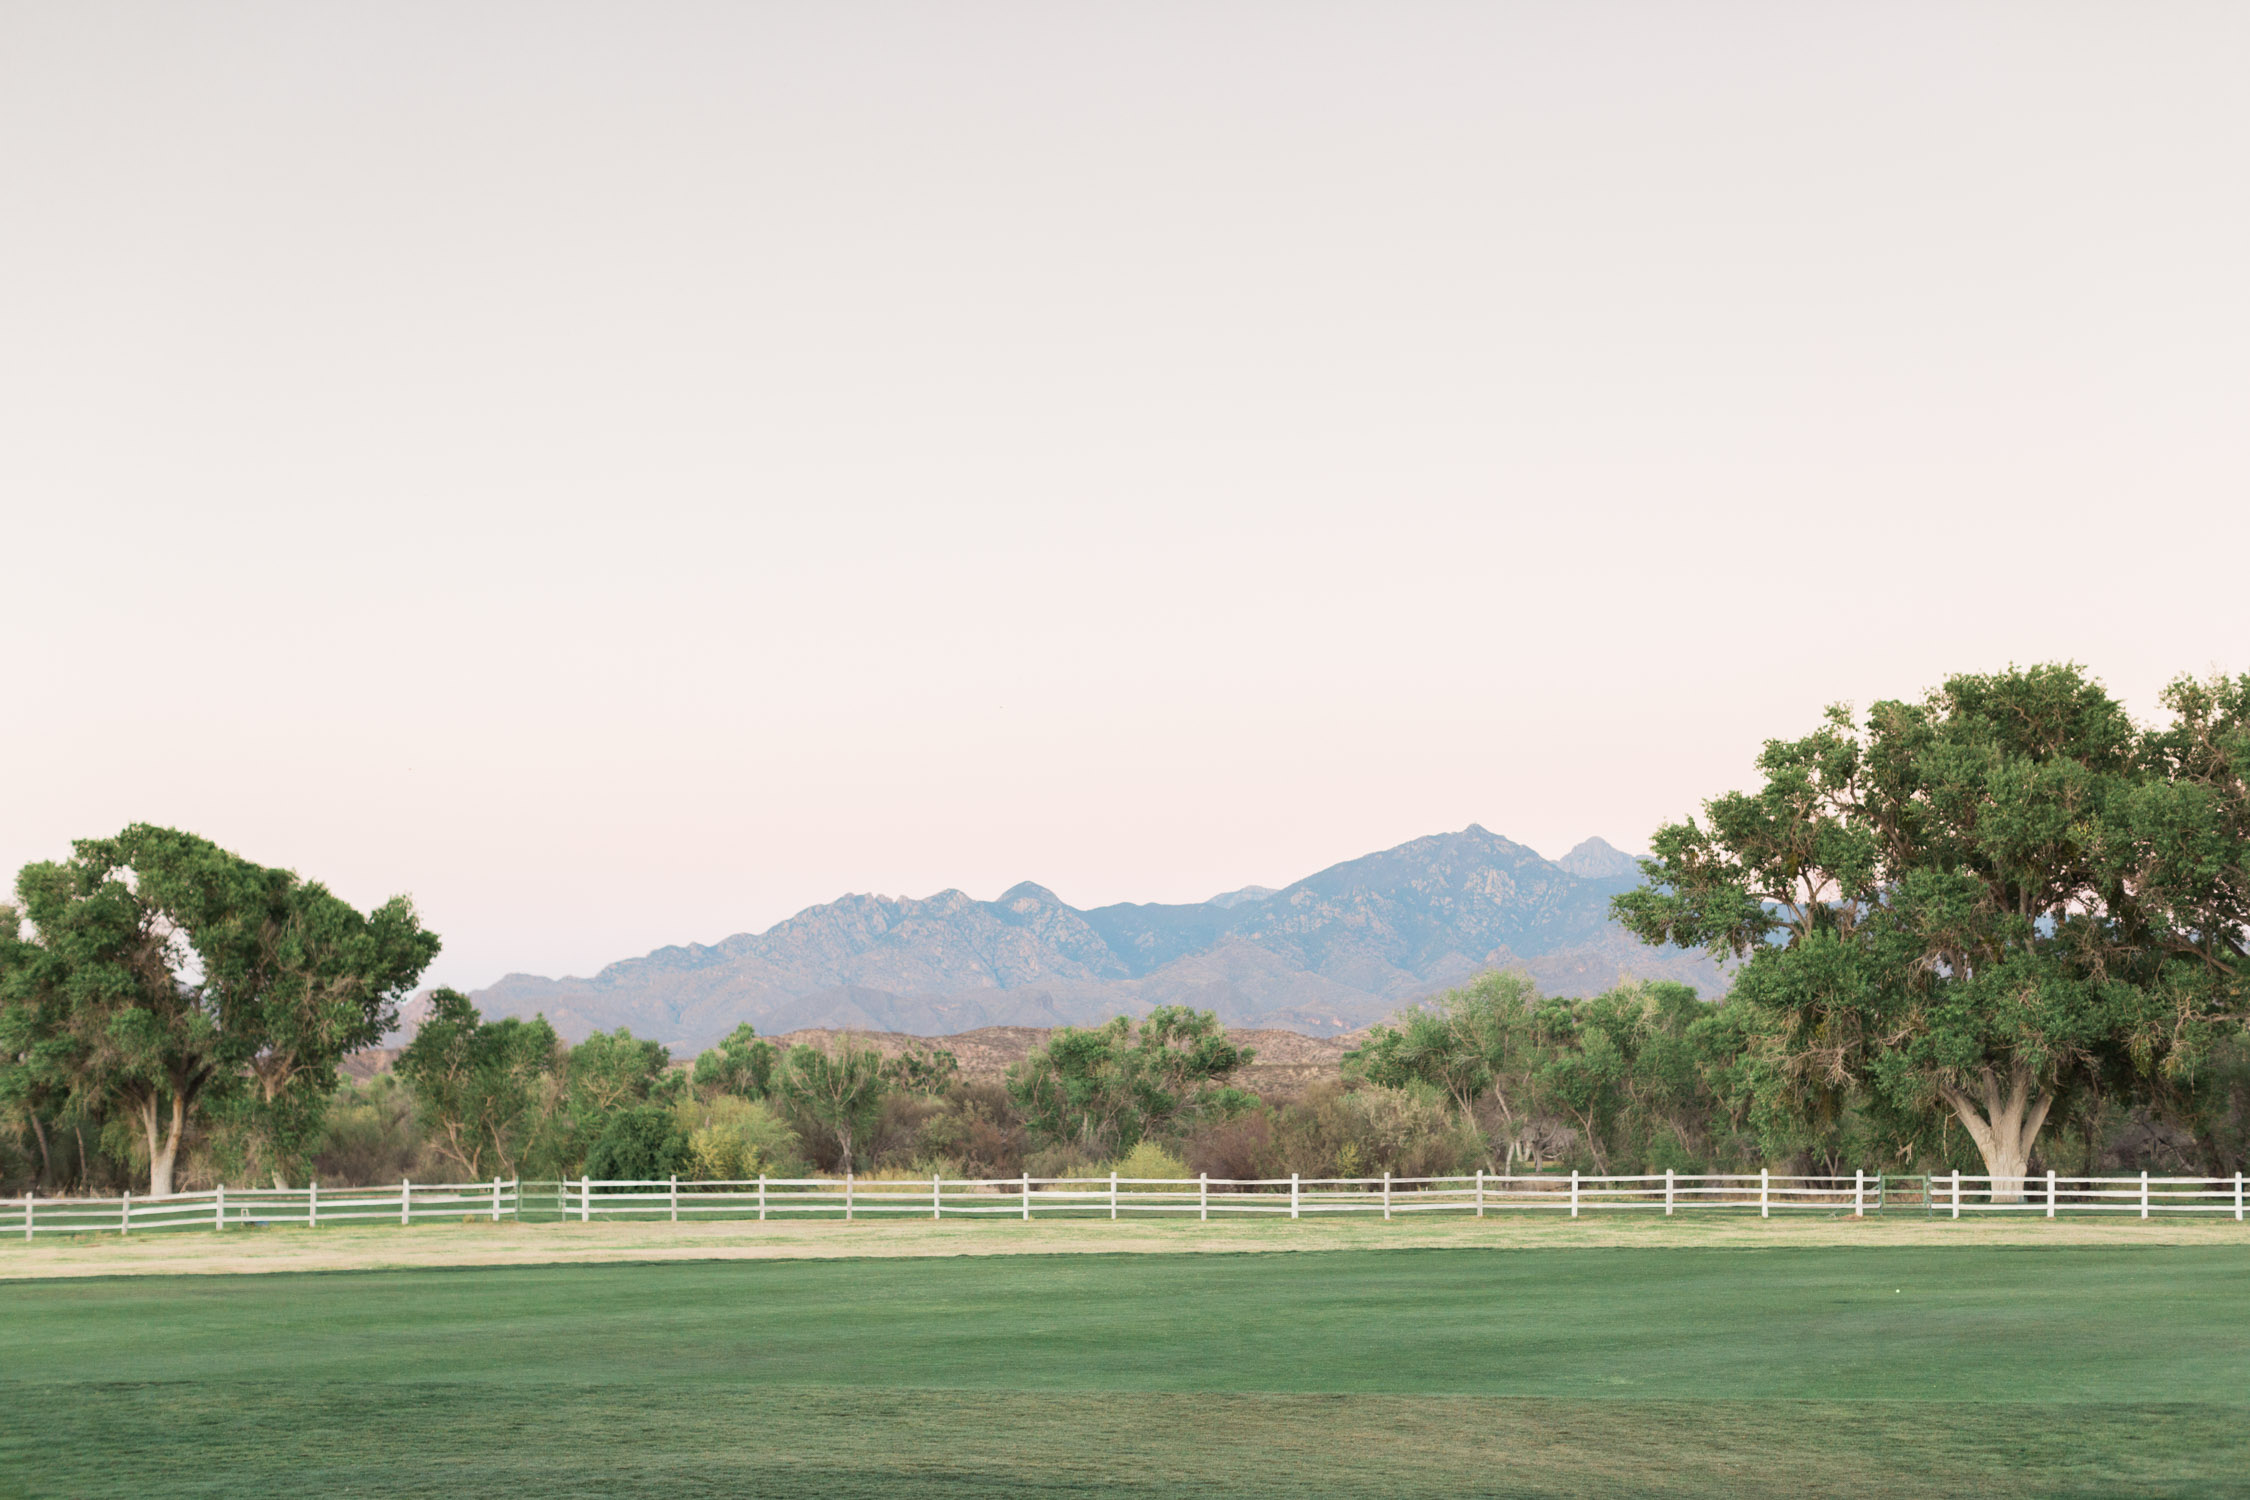 Beautiful views at Tubac Golf Resort for Alyssa & Dave's wedding planned by Rackel Ghelsen Weddings!